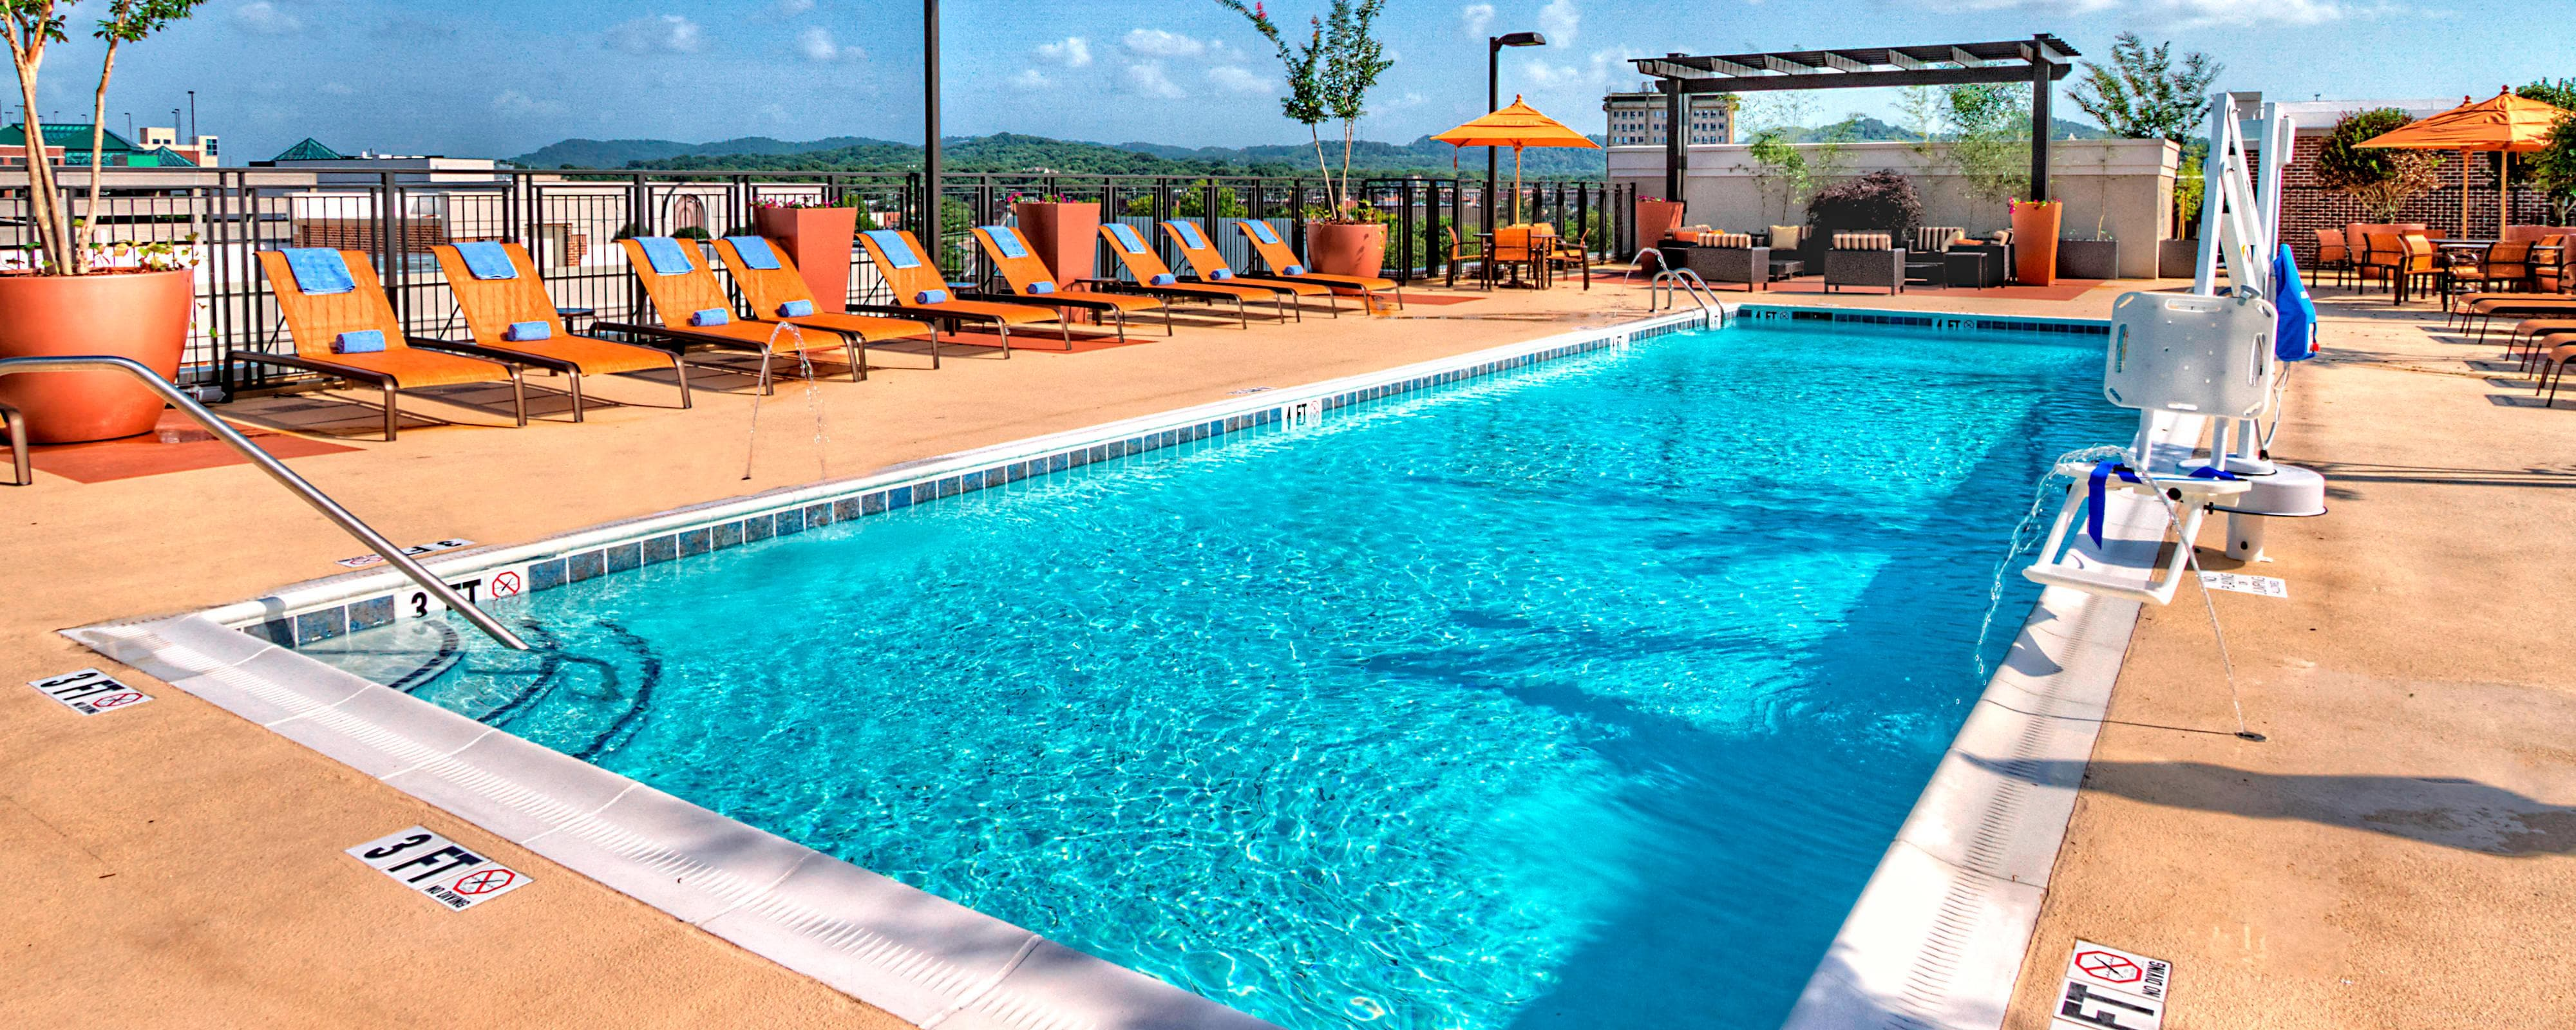 Green Hills Nashville Hotel Pool